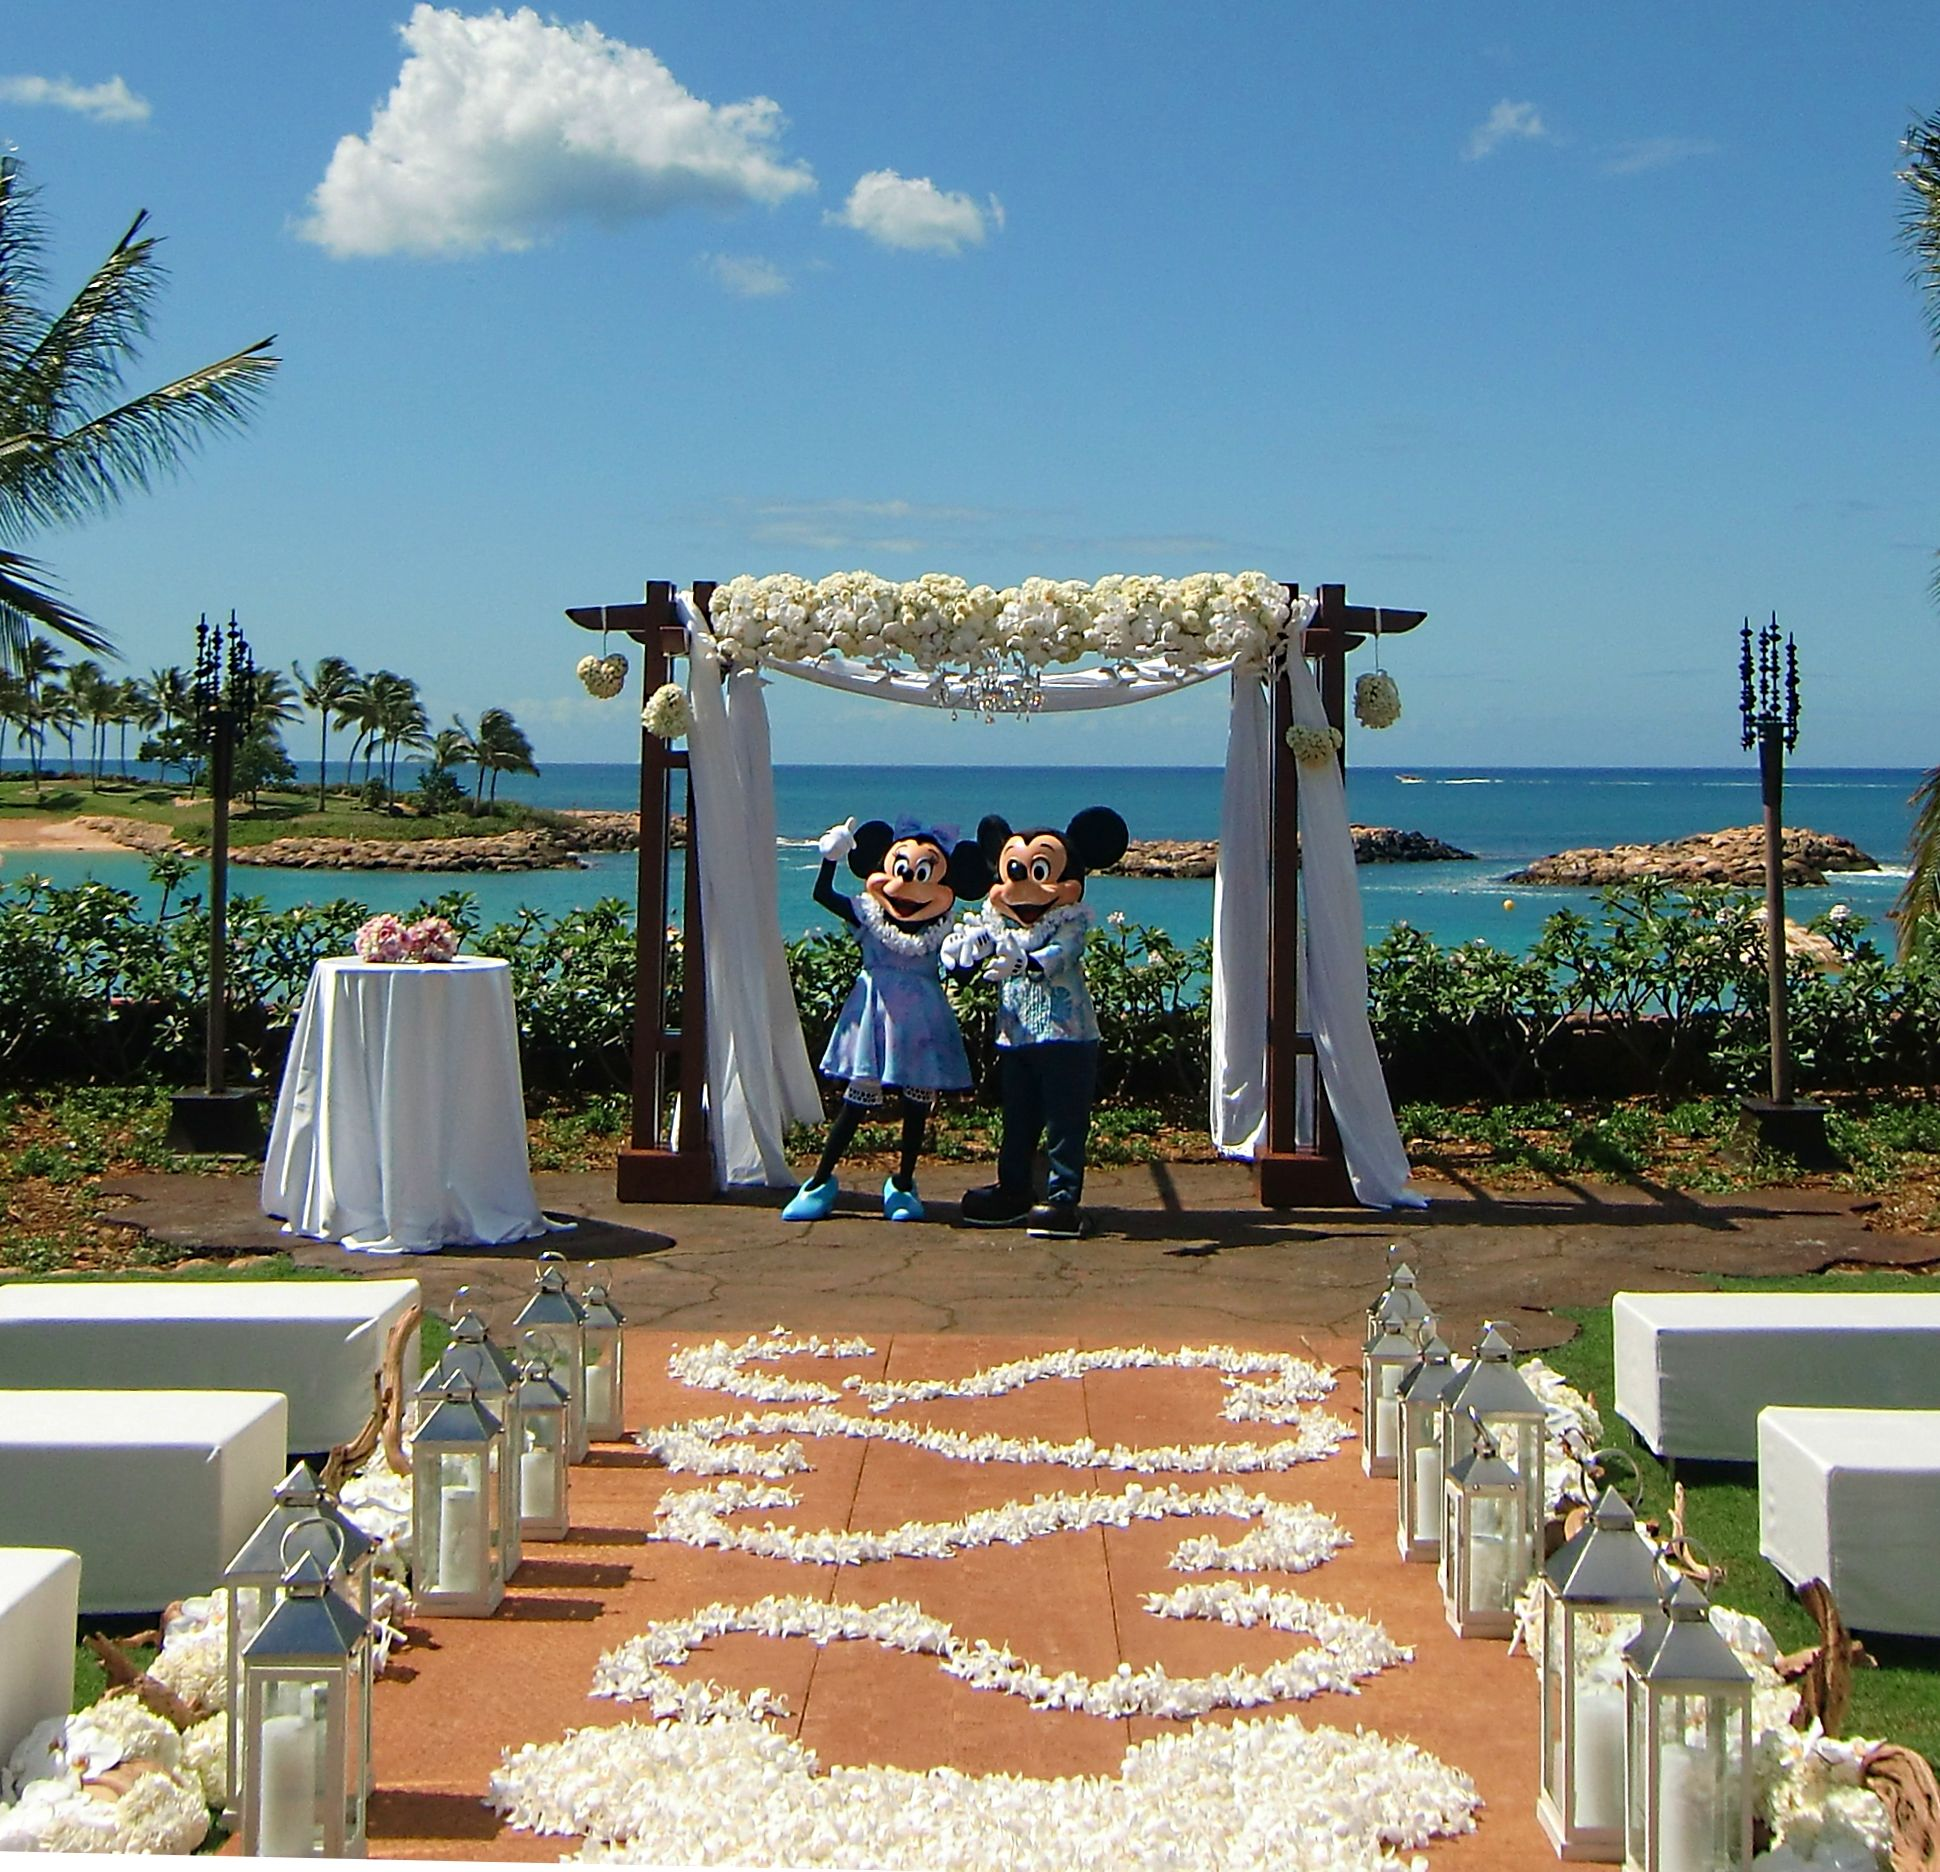 Aulani Weddings: This Is An Even Better View Of The Makaloa Garden Where